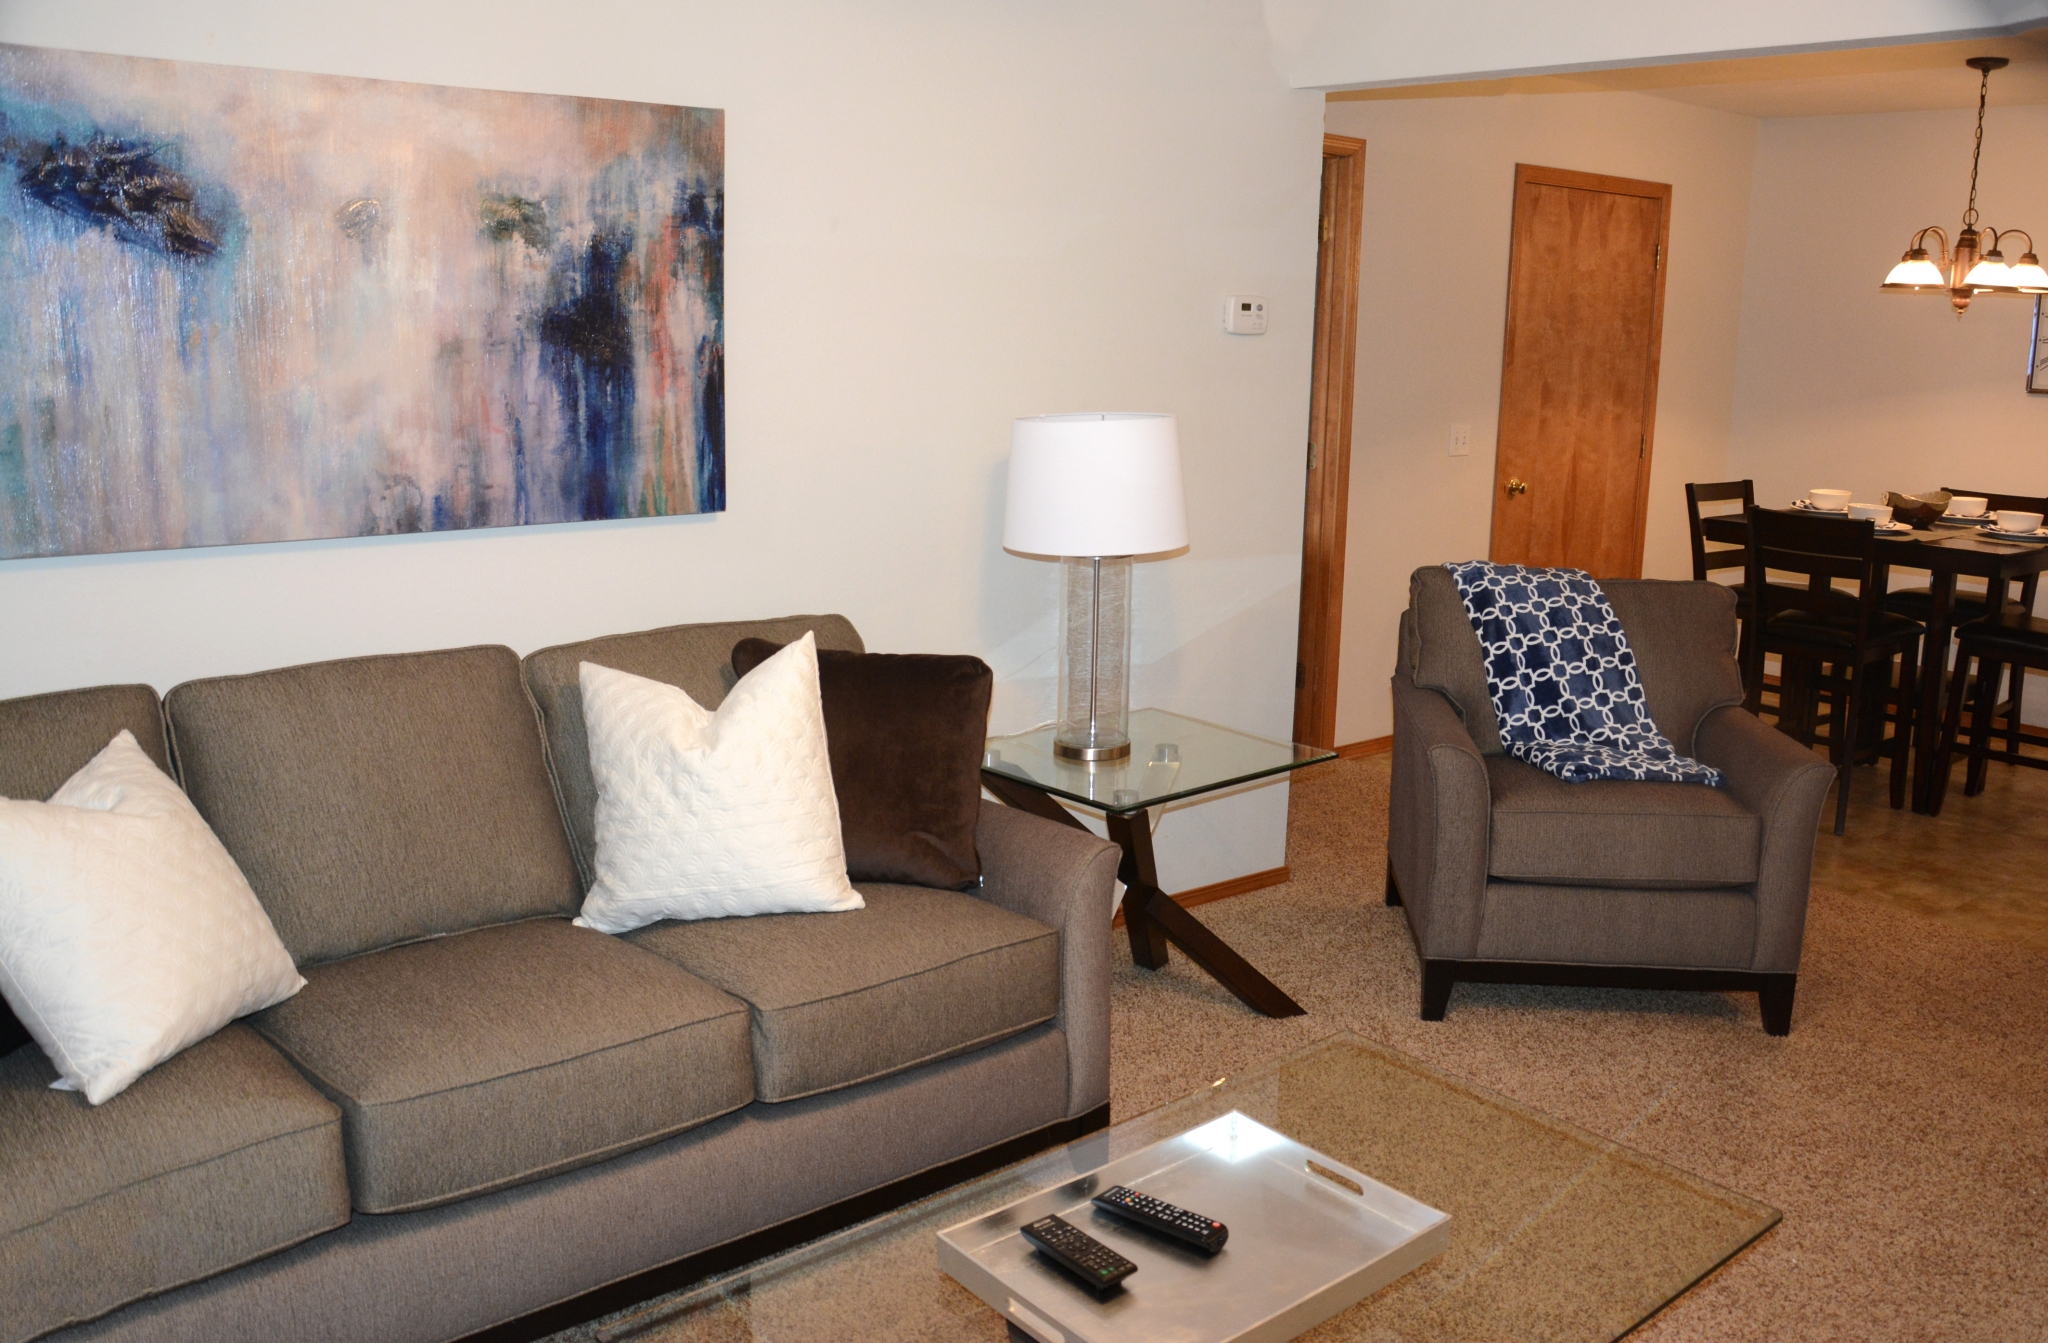 living room with large grey couch and chair and a coffee table